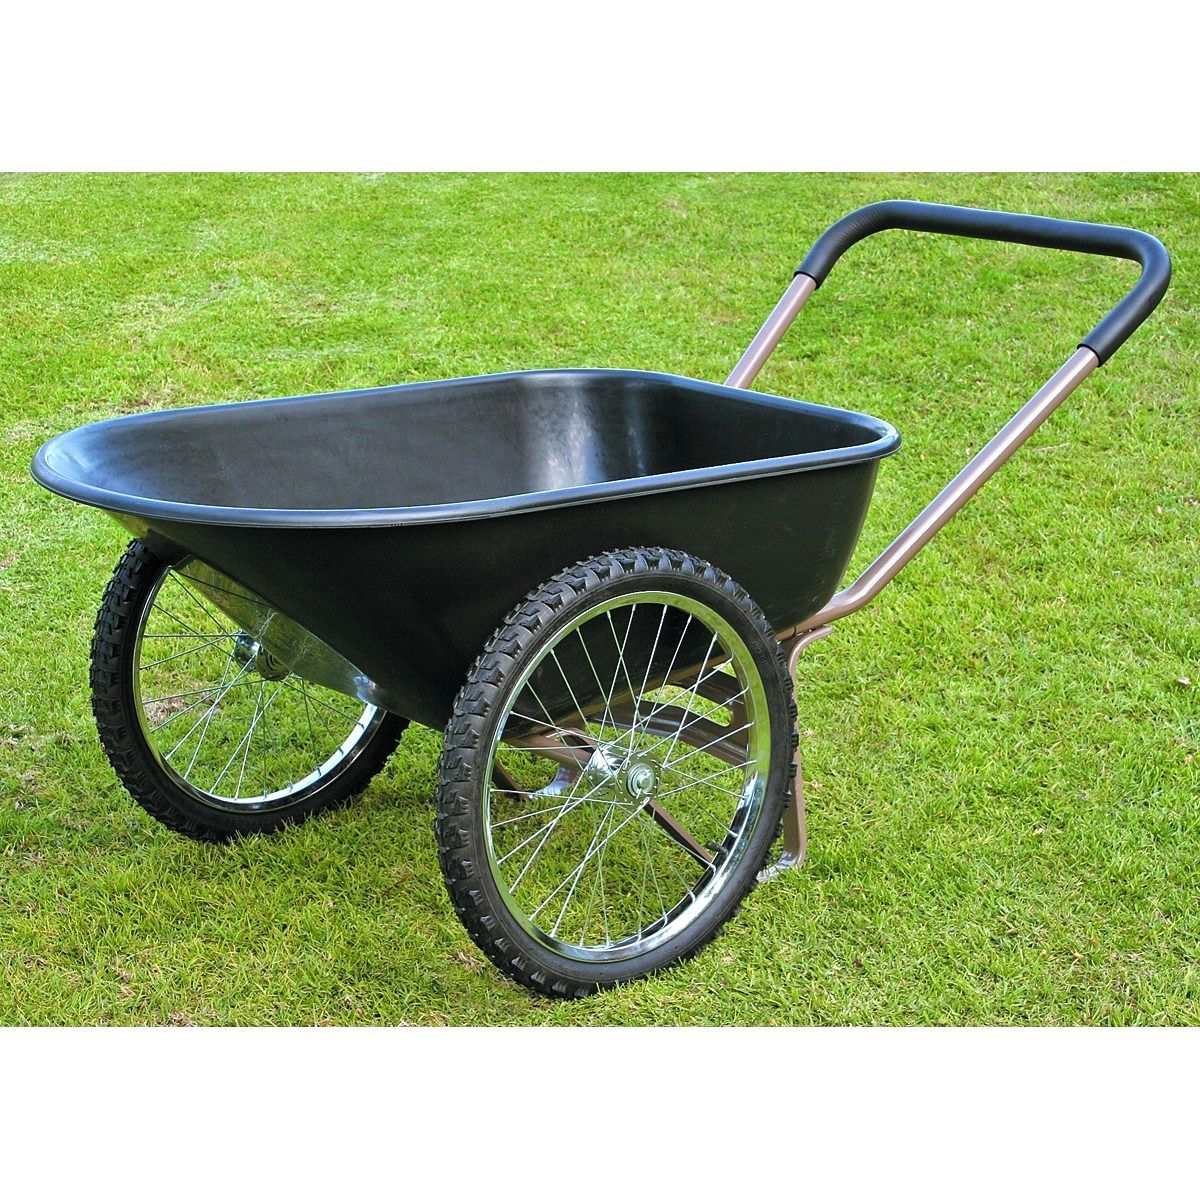 How To Build A Garden Cart Using Bicycle Wheels Garden Cart